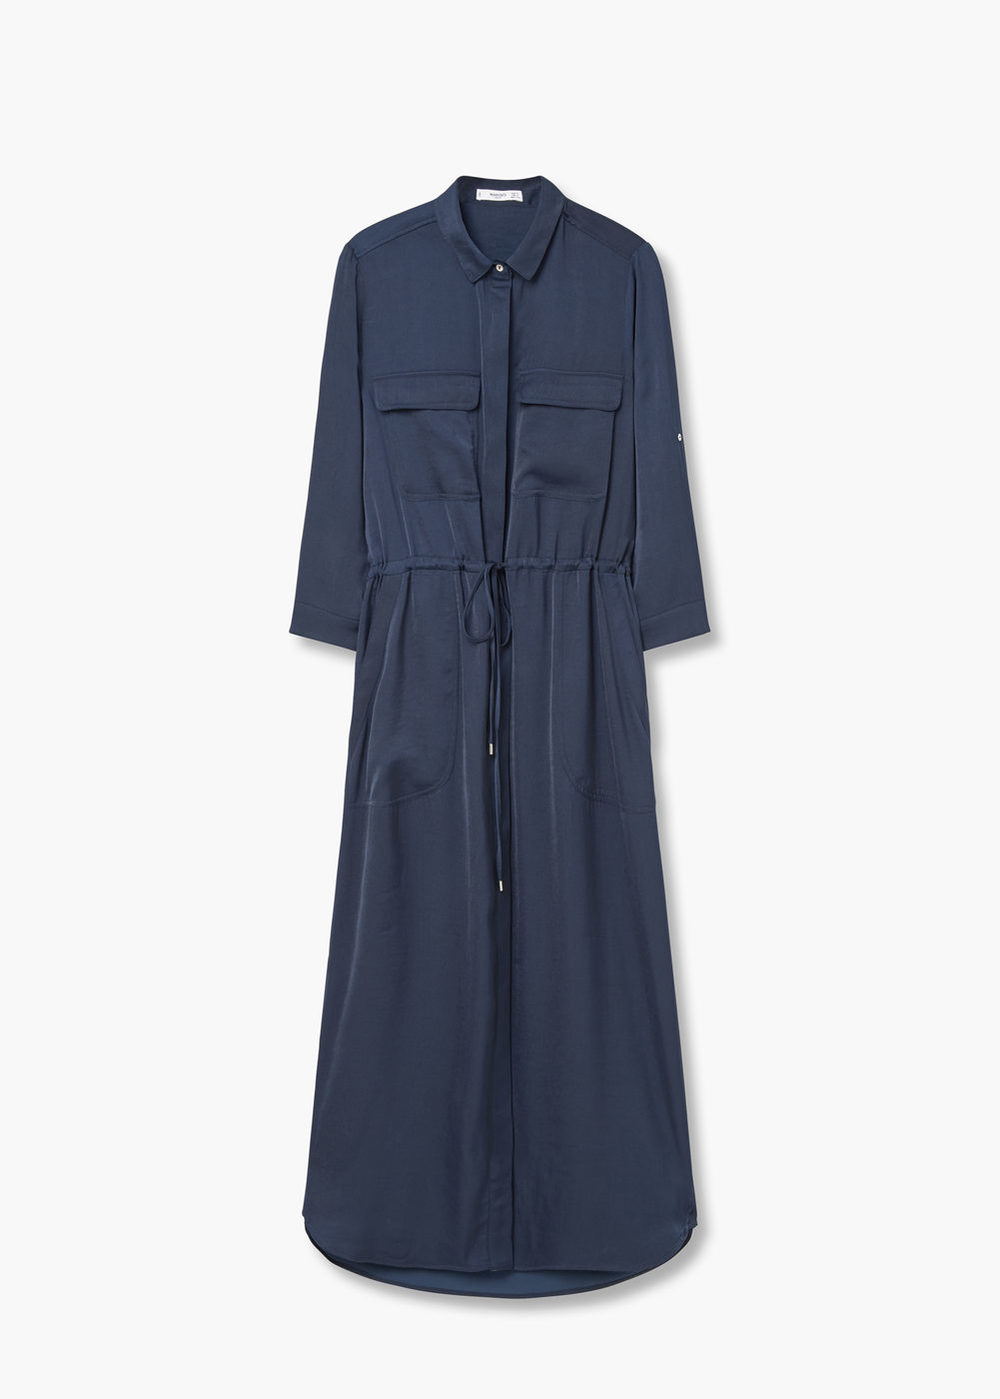 The Maxi Shirtdress, Mango - £59.99